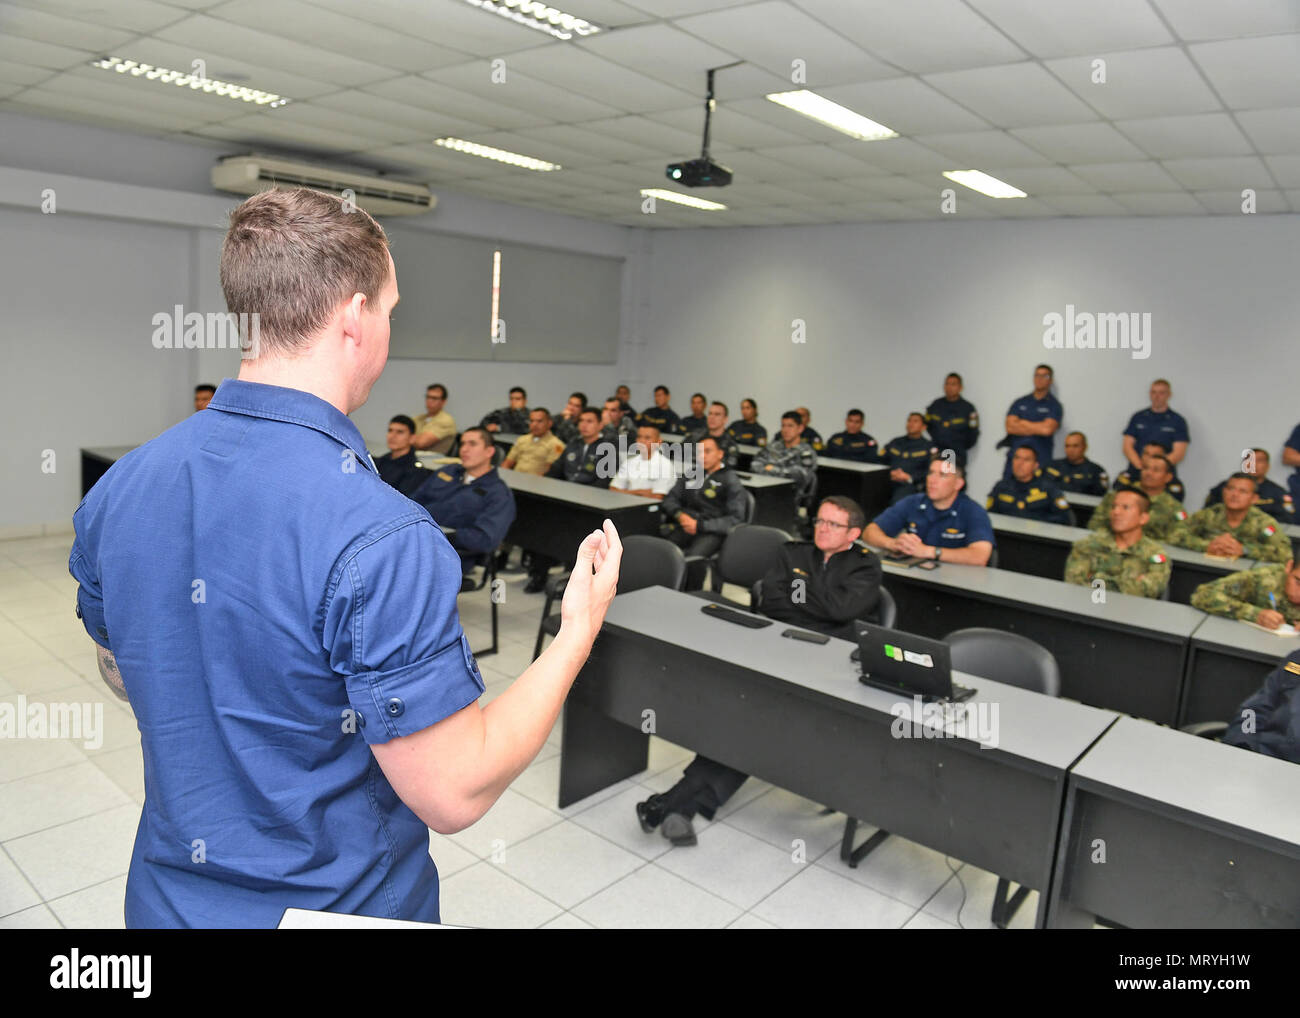 170716-N-PQ607-010  LIMA, Peru (July 16, 2917) - U.S. Coast Guard Lt. Andrew Ray conducts a maritime law enforcement symposium with UNITAS partner nation participants from Mexico, Peru, Honduras and Chile. UNITAS is an annual exercise that focuses on strengthening our existing regional partnerships and encourages establishing new relationships through the exchange of maritime mission-focused knowledge and expertise throughout the exercise. (U.S. Navy photo by Mass Communication Specialist 2nd Class Michael Hendricks/Released) - Stock Image